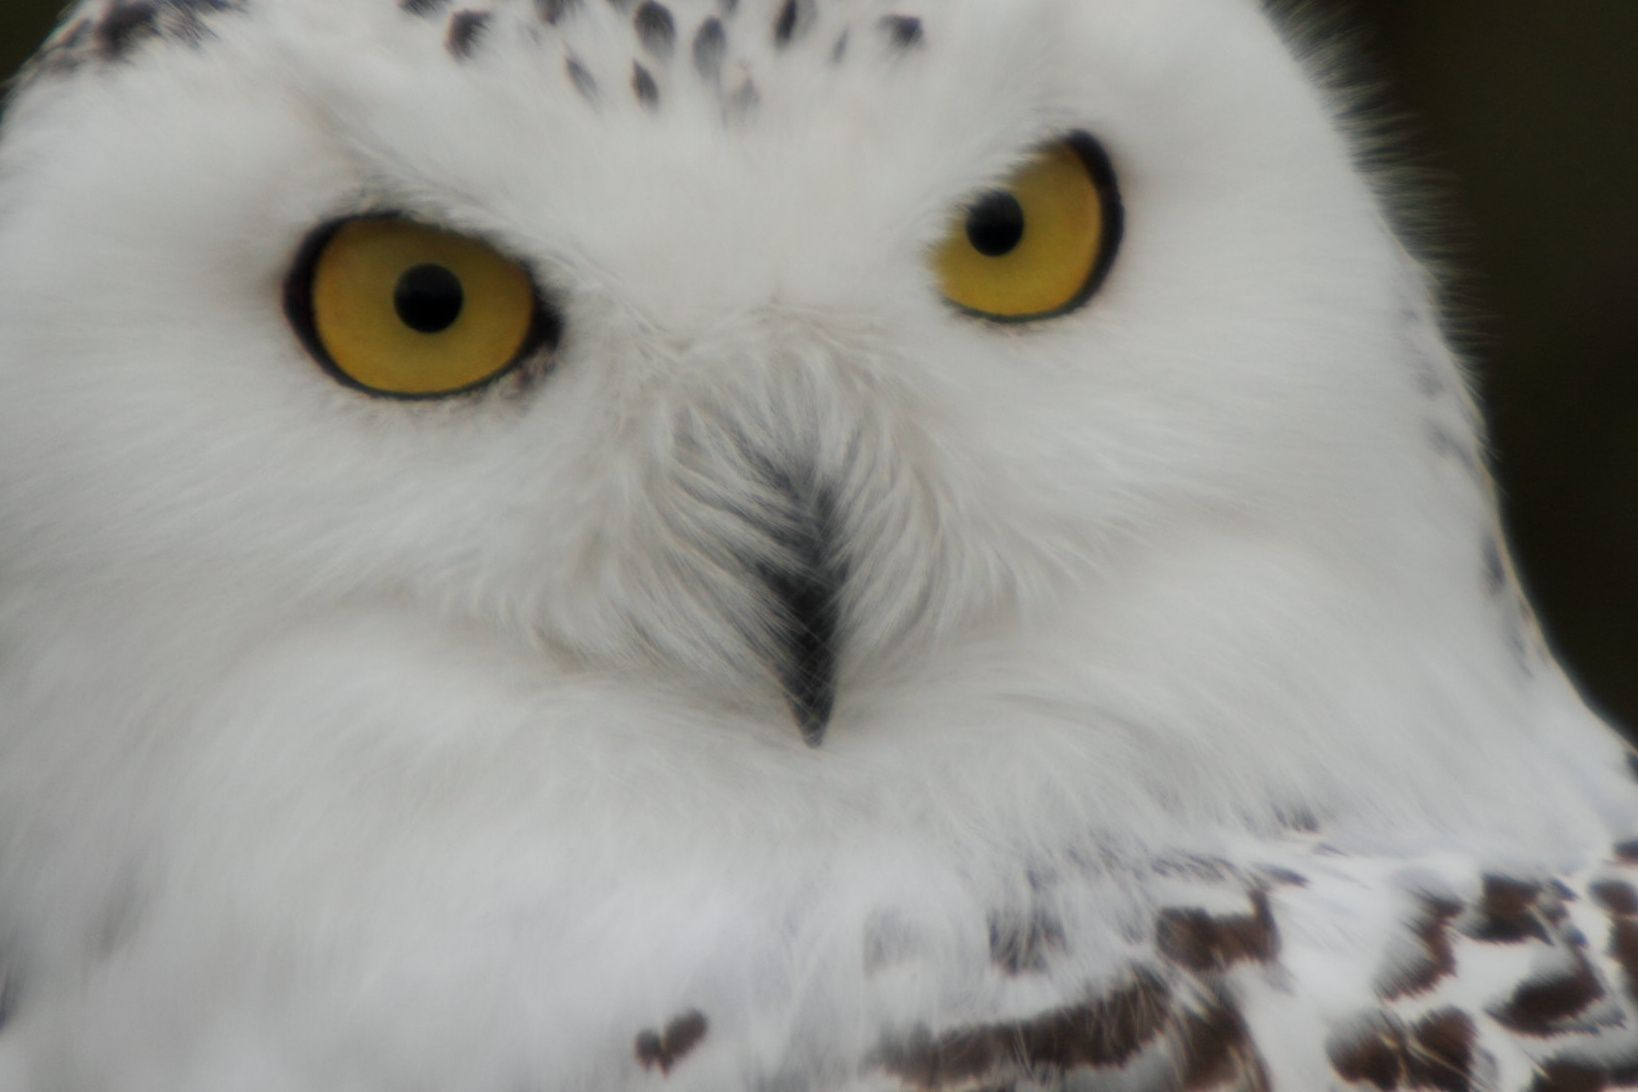 snowy owl face with short bristly feathers near beak